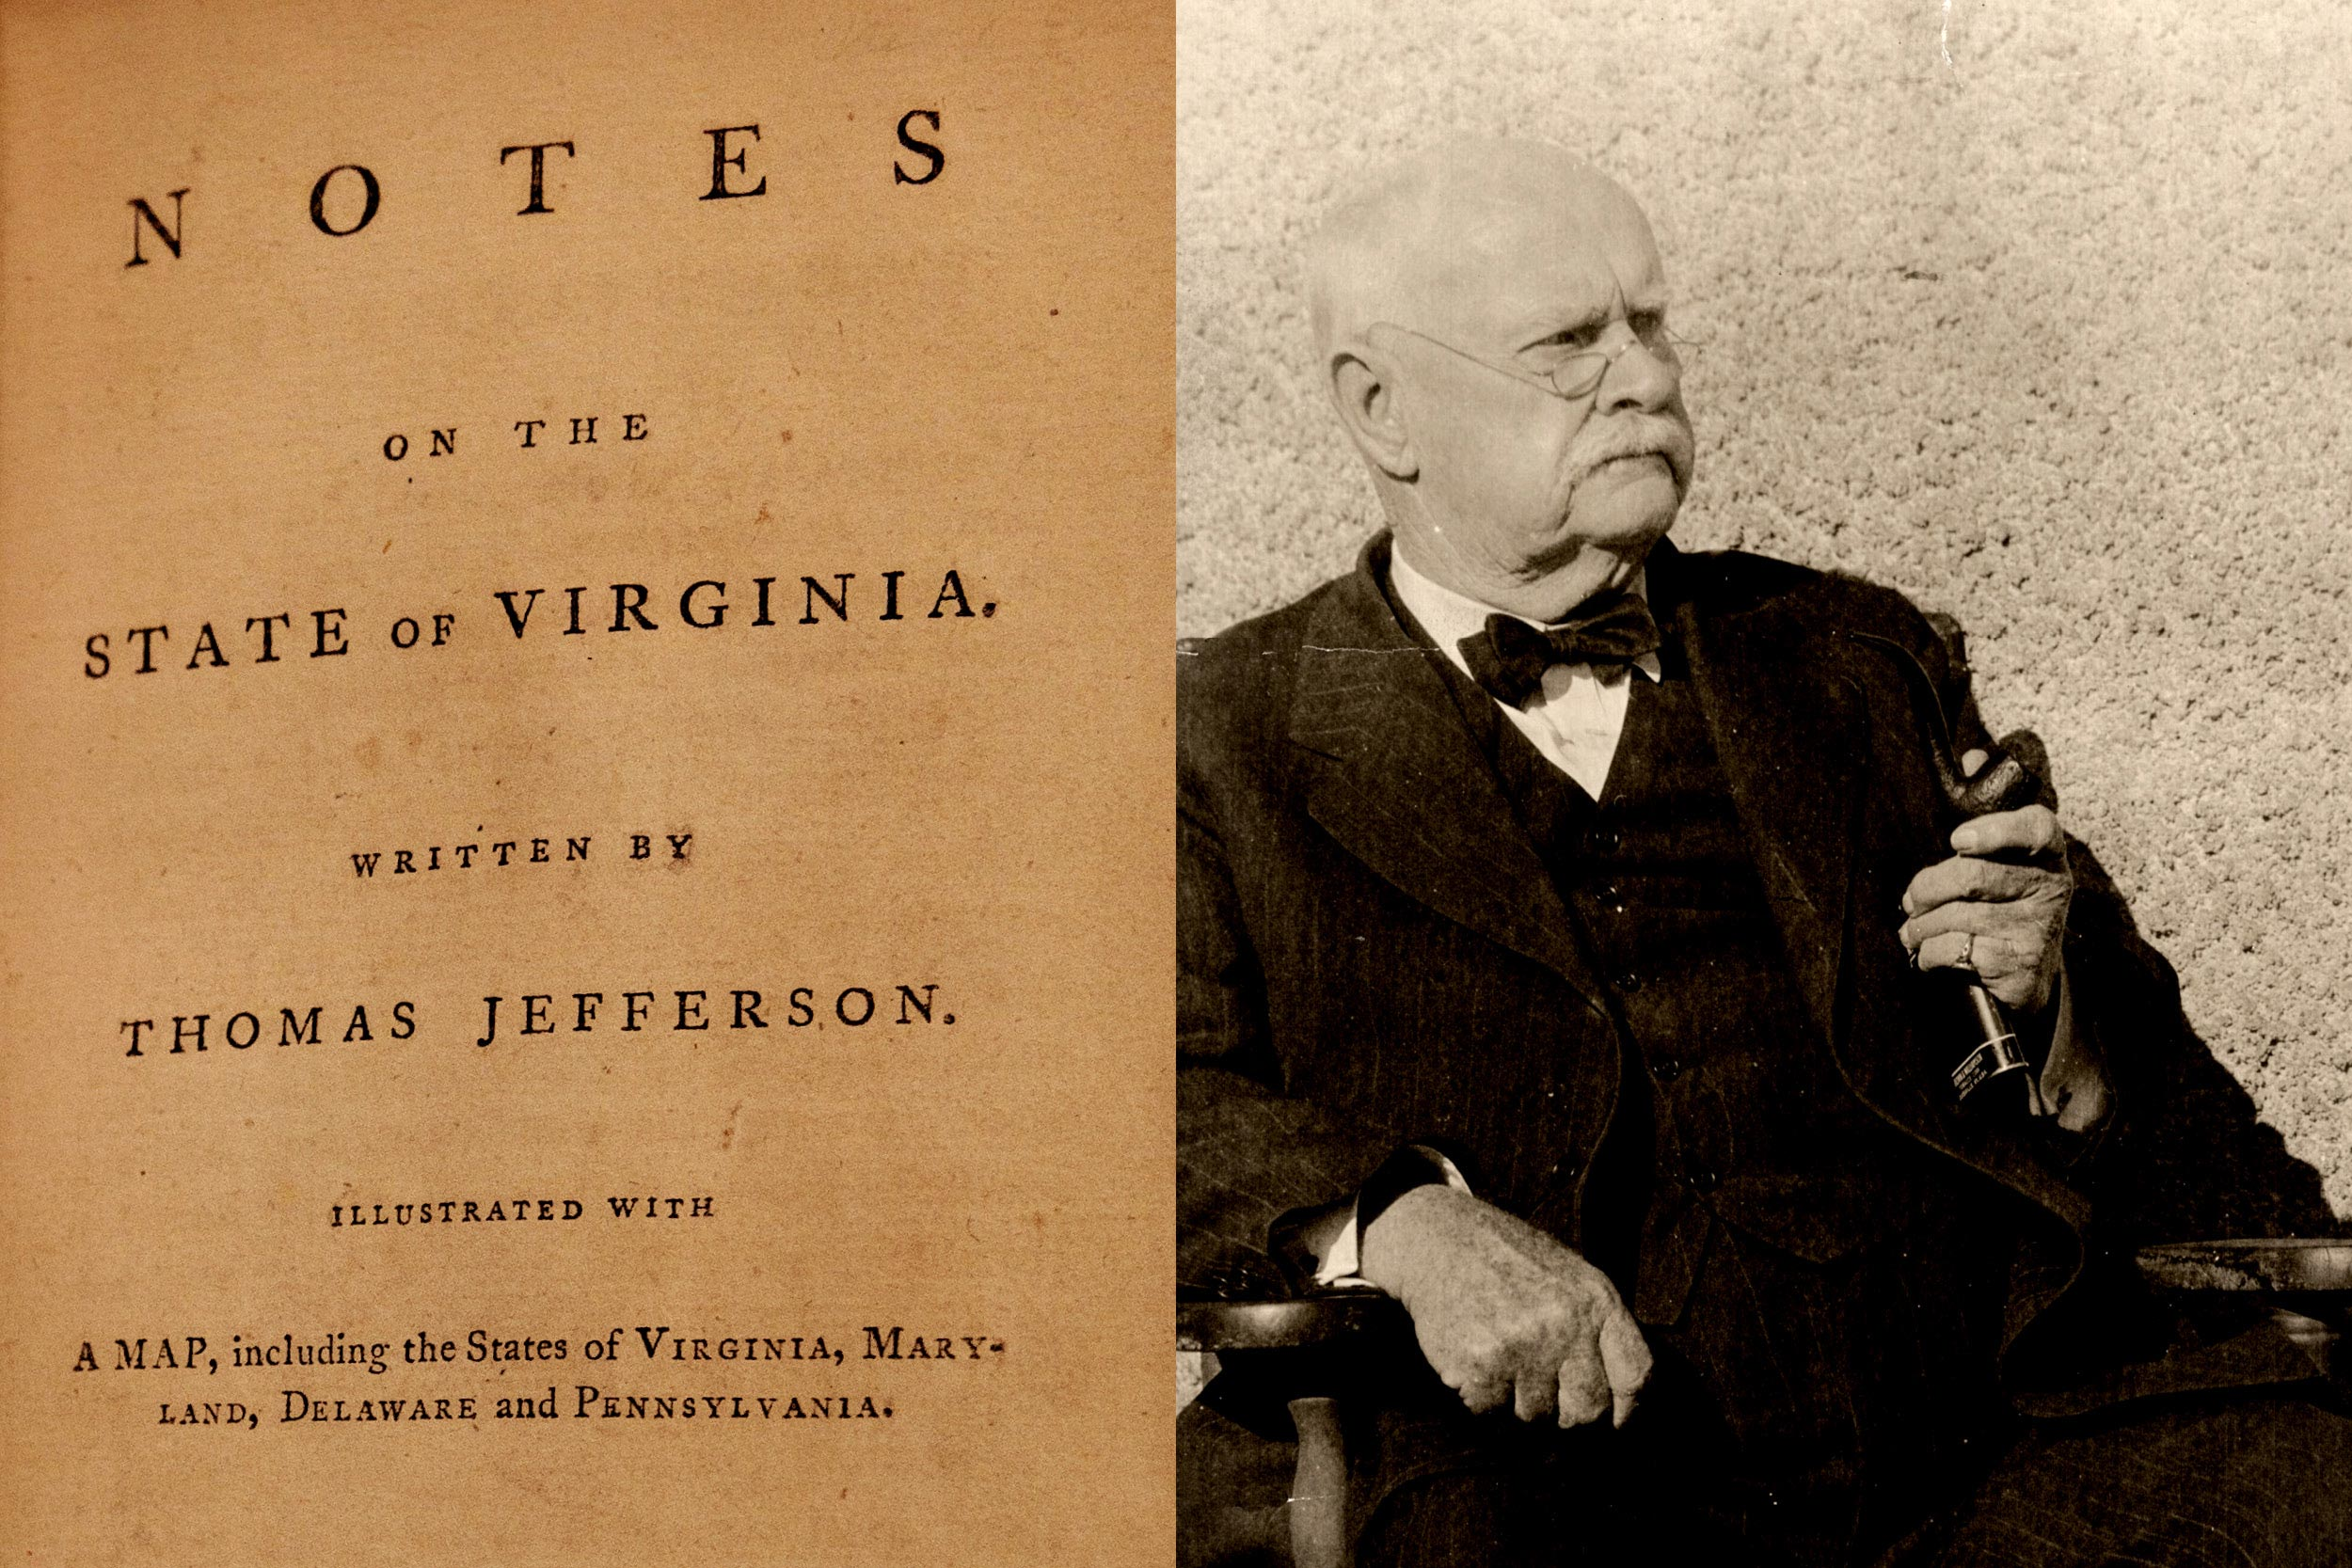 Notes on the State of Virginia, Written by Thomas Jefferson. Illustrated with a map, including the States of Virginia, Maryland, Delaware and Pennsylvania.